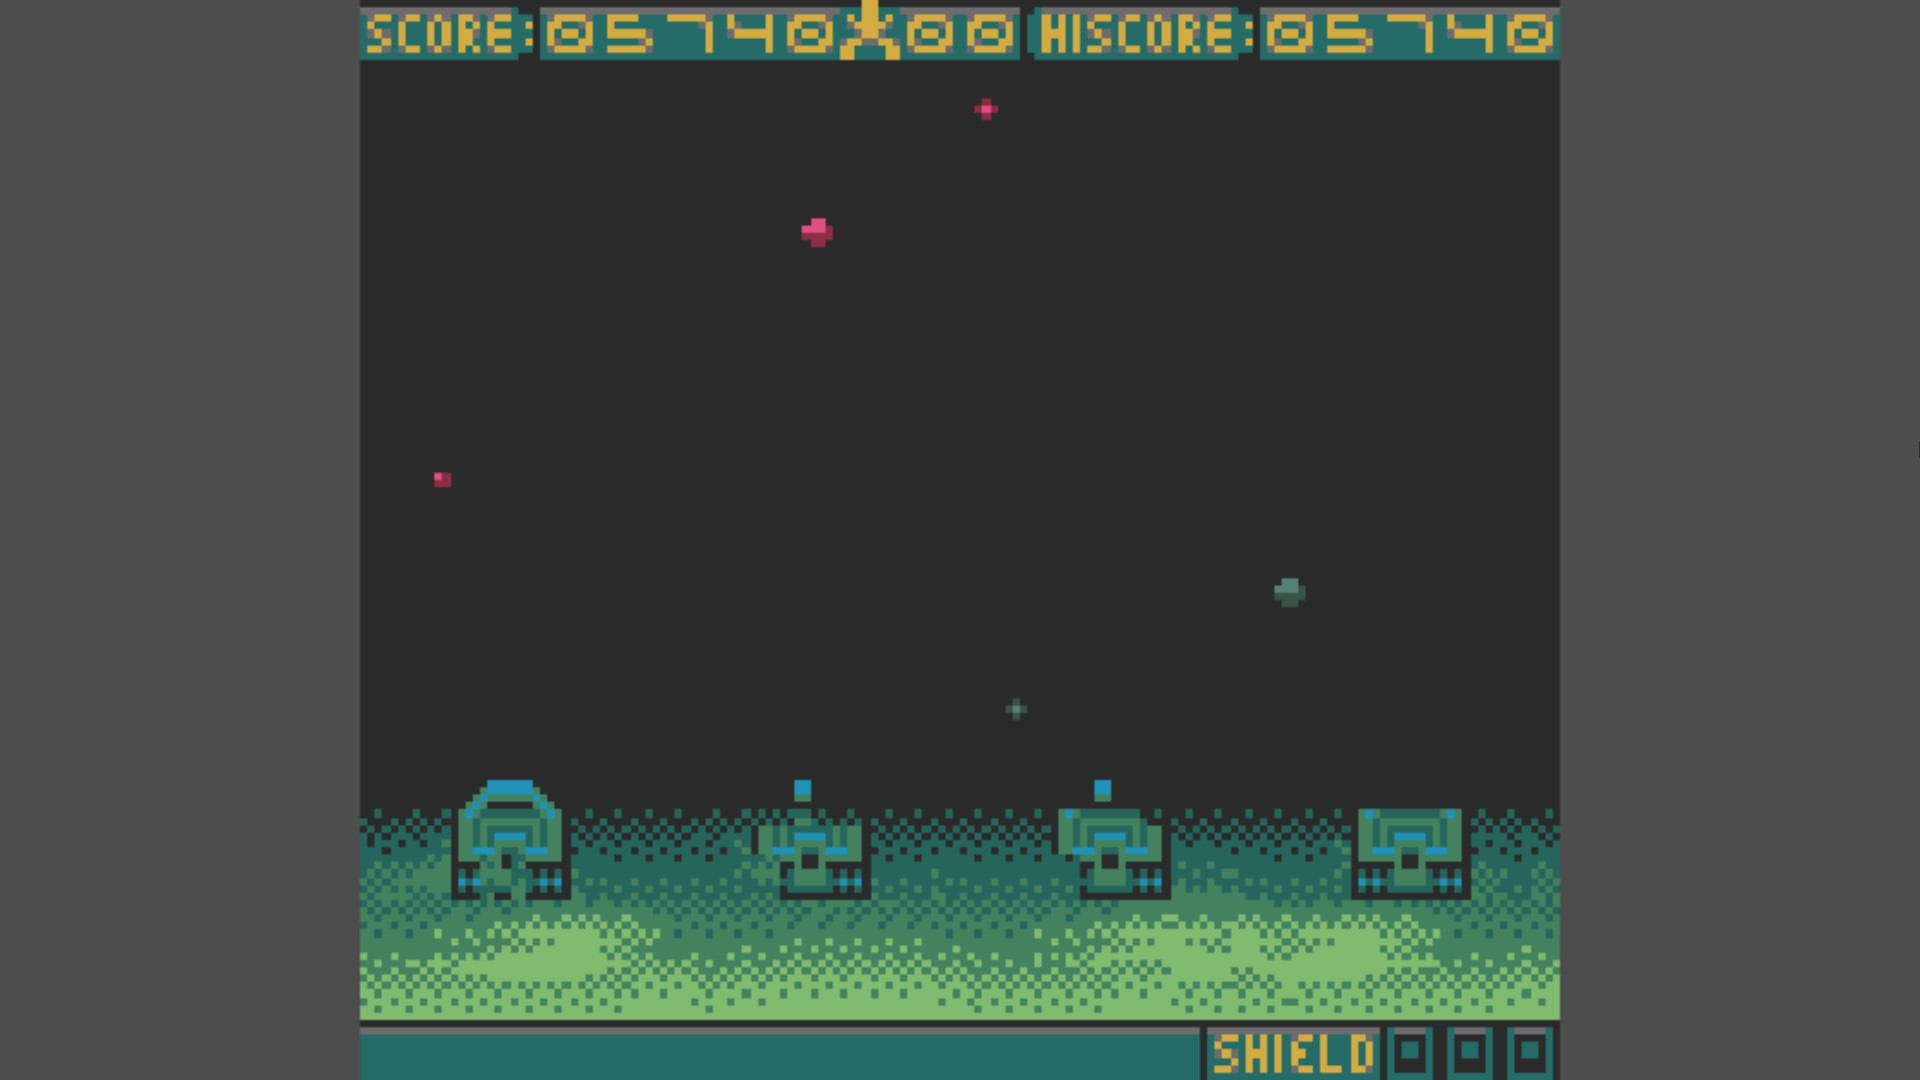 AkinNahtanoj: Space Invaders (Game Boy Color Emulated) 5,740 points on 2020-10-14 16:29:56